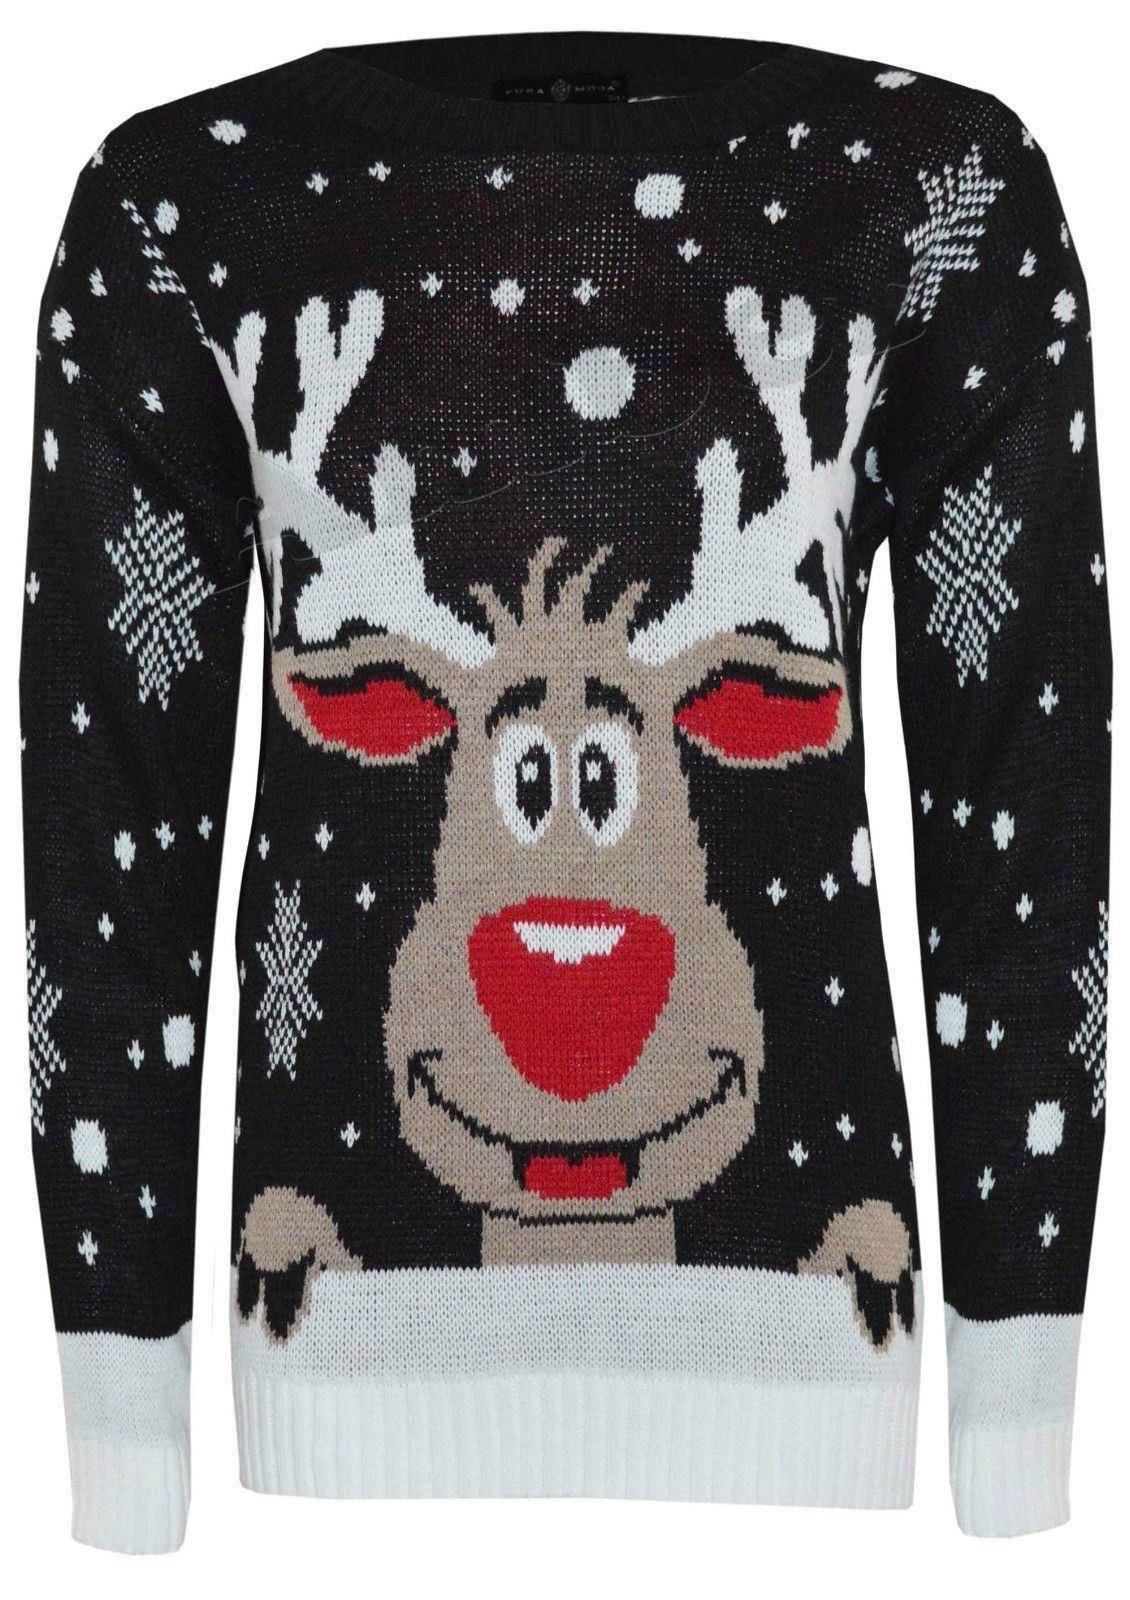 Unisex Christmas Jumpers Olaf Minion ReindeerxMAS Knitted Tops Winter Jumpe...